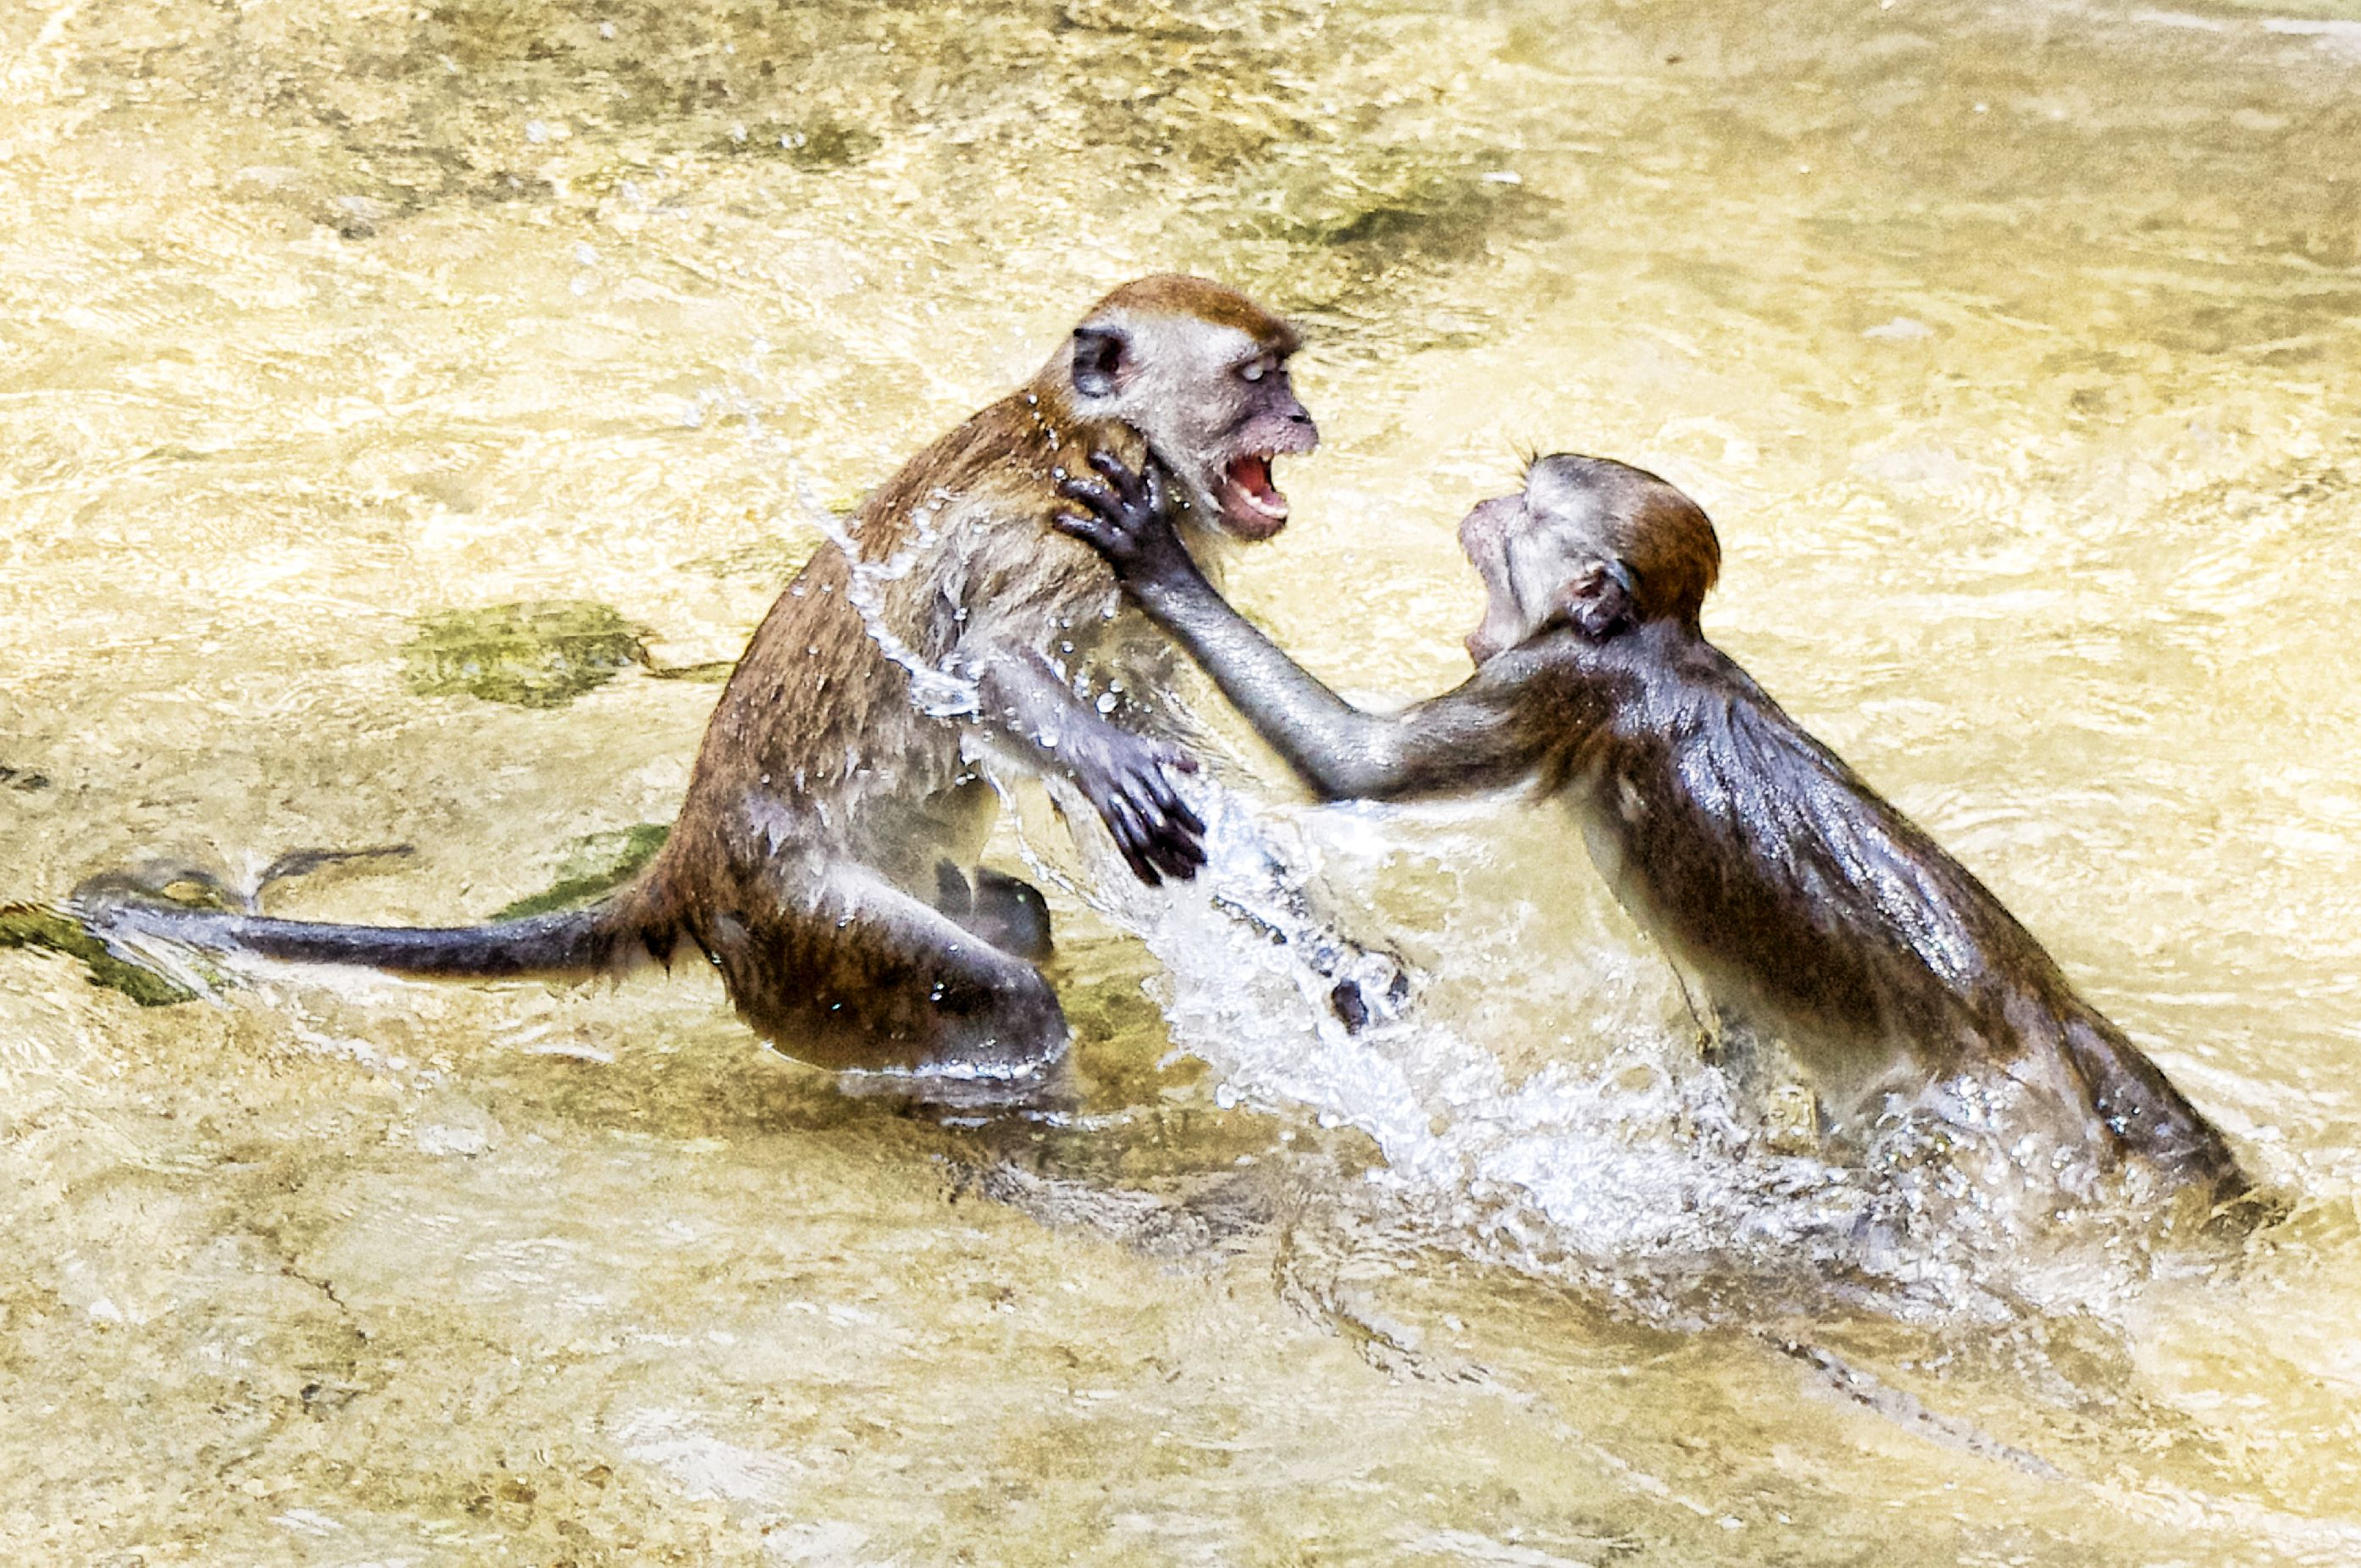 wild monkeys fighting ashton morris